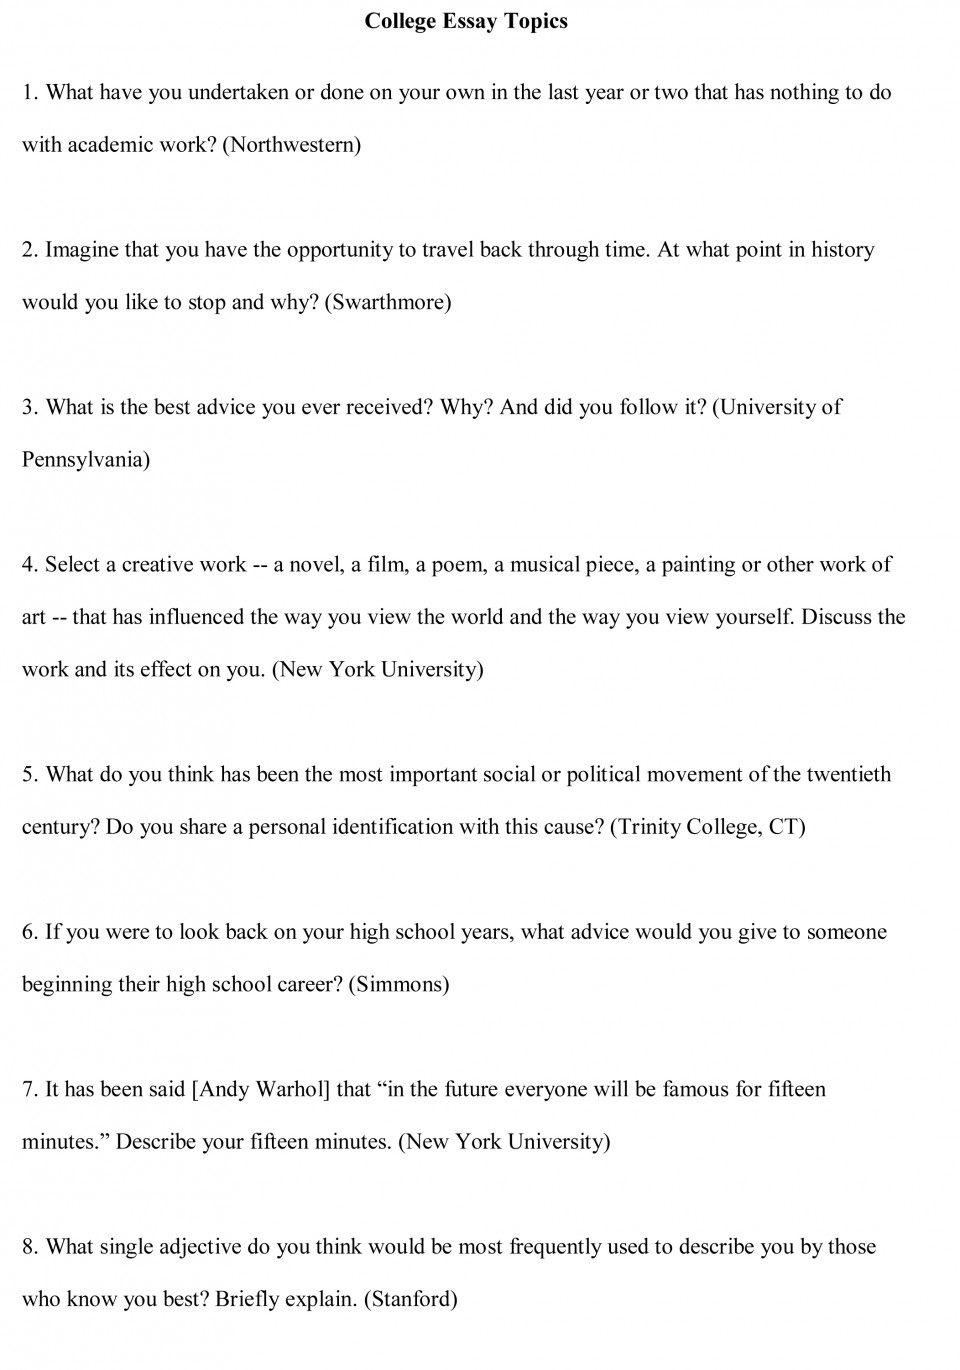 003 College Essay Topics Free Sample1 Prompts Impressive Writing Prompt Examples Amherst 2017 Pomona 960